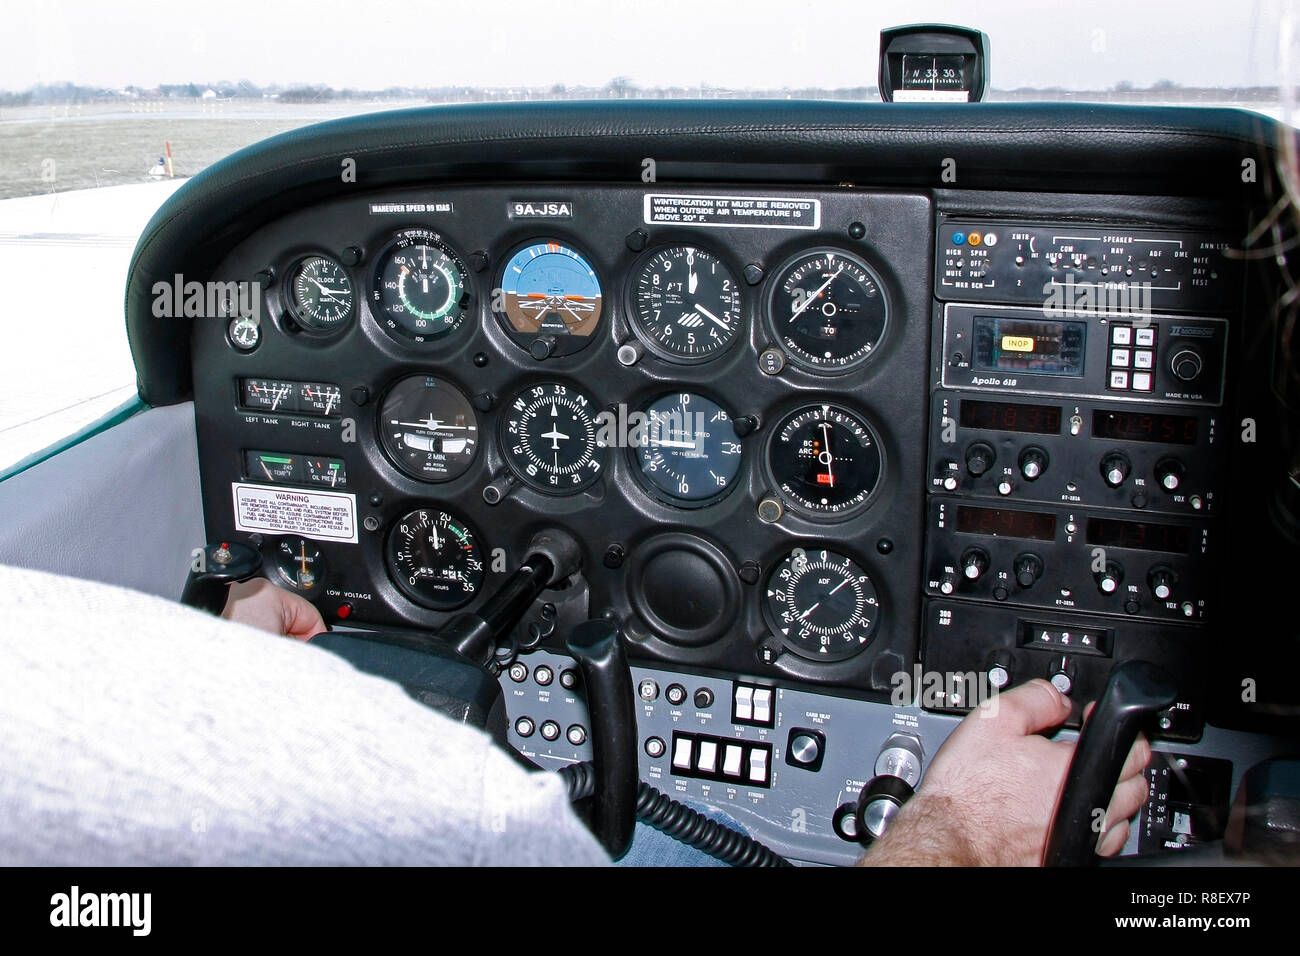 Zagreb, Croatia - February 25, 2012: Pilot cheks the instruments in the airplane before taking off - Stock Image